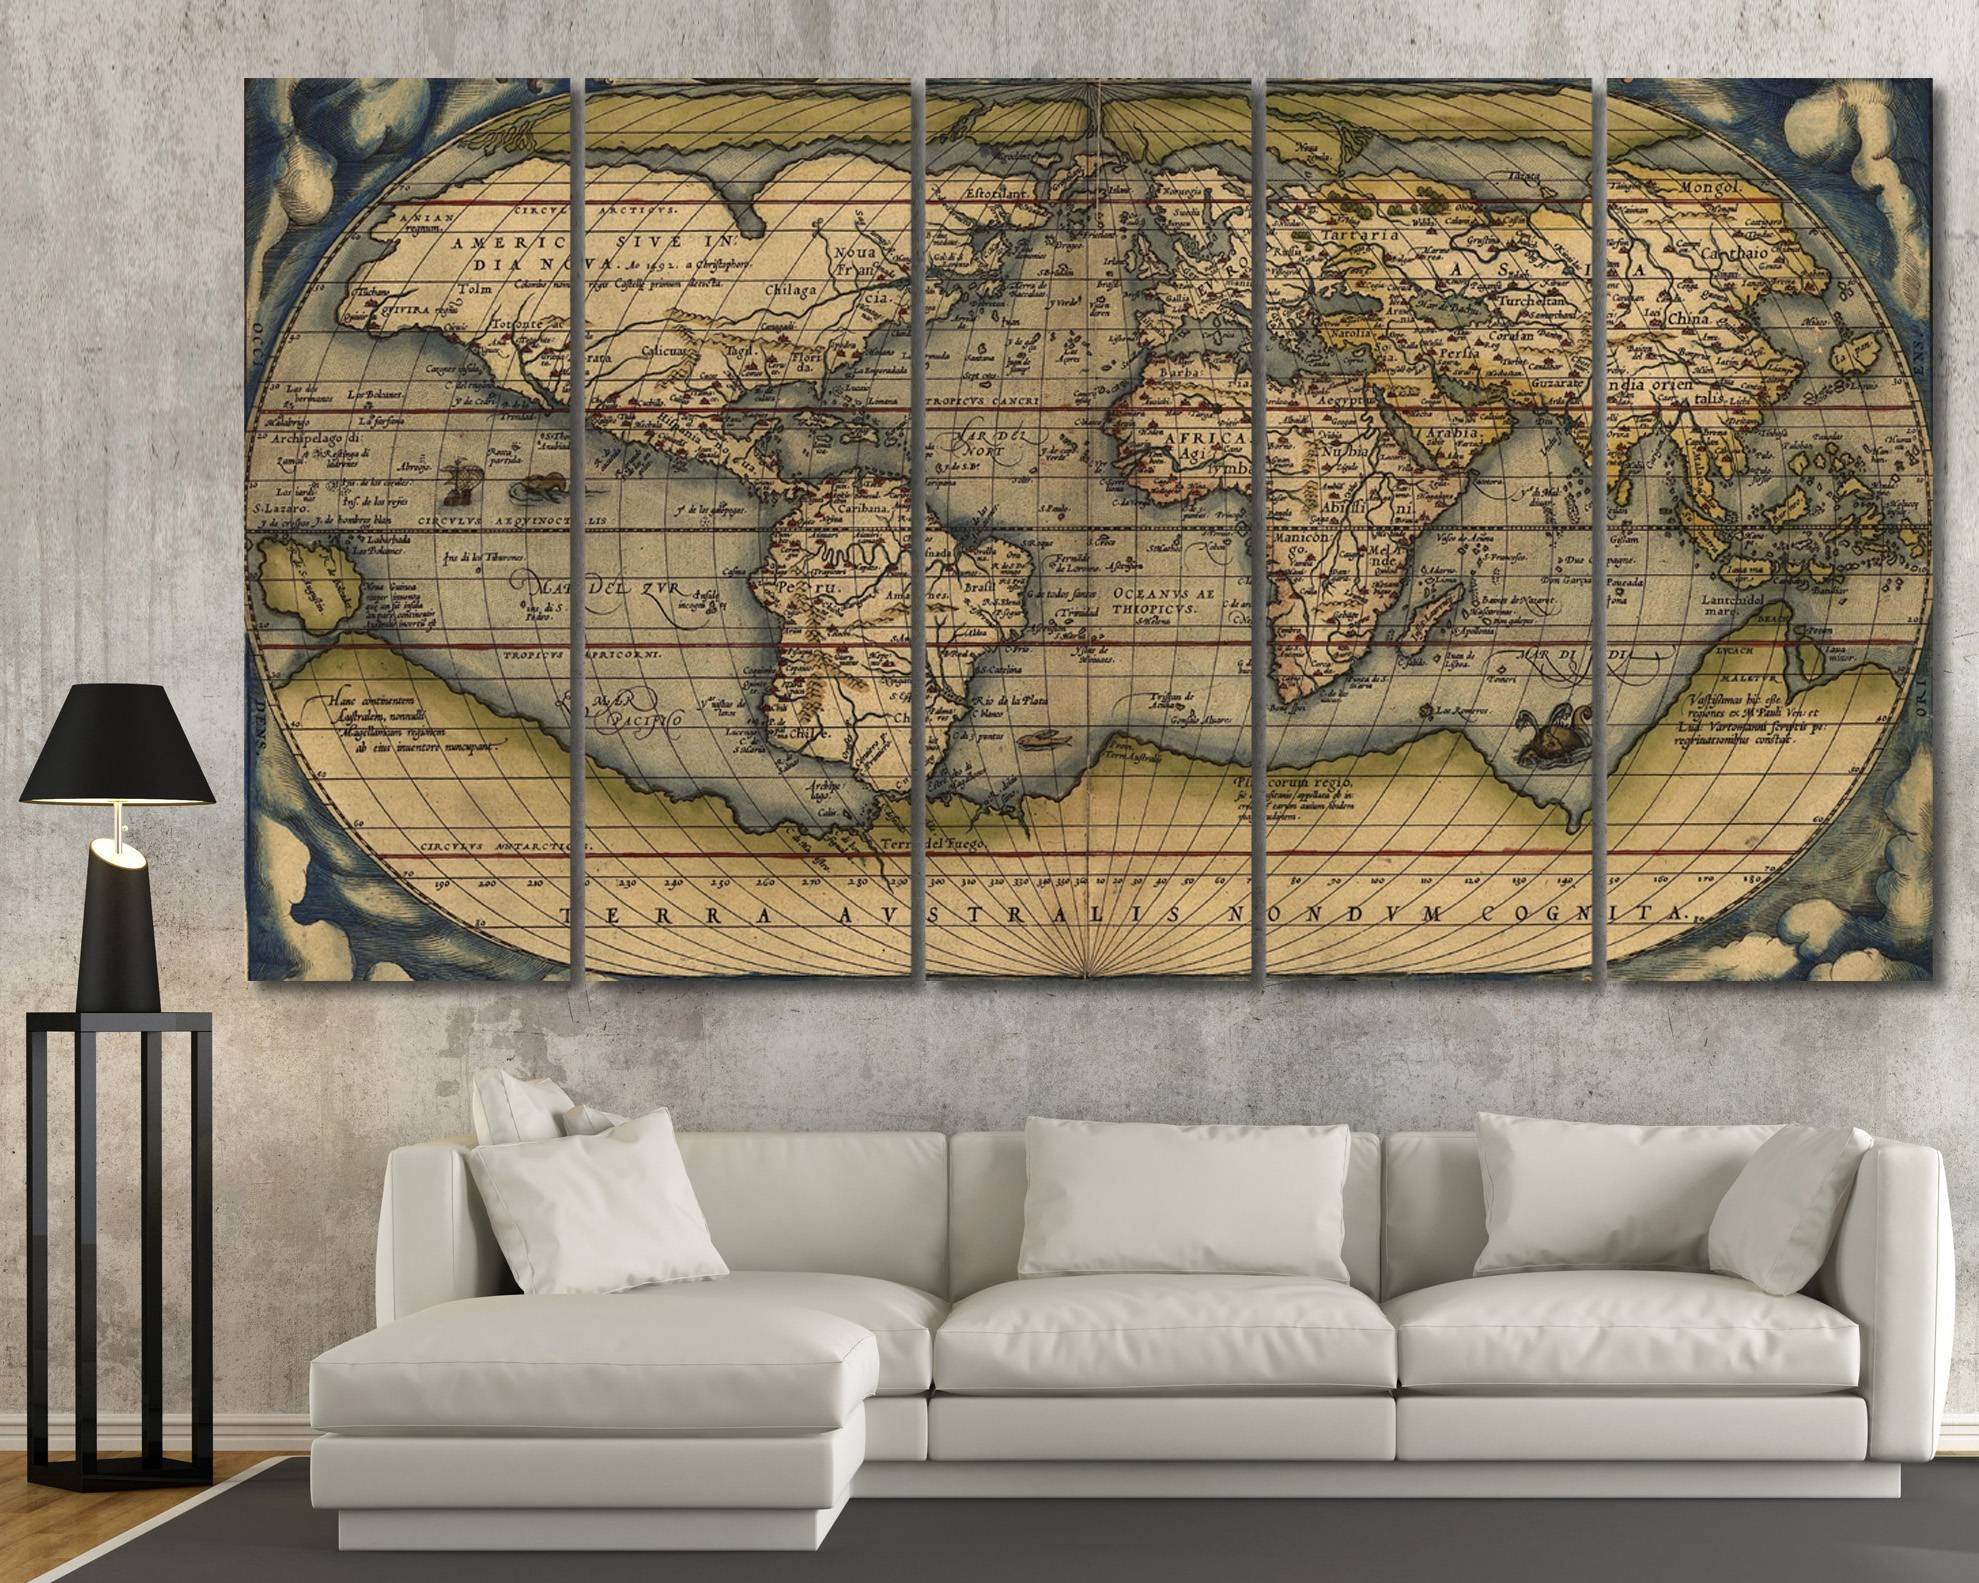 Large Vintage Wall Art Old World Map At Texelprintart With Regard To Most Popular Vintage World Map Wall Art (View 3 of 20)